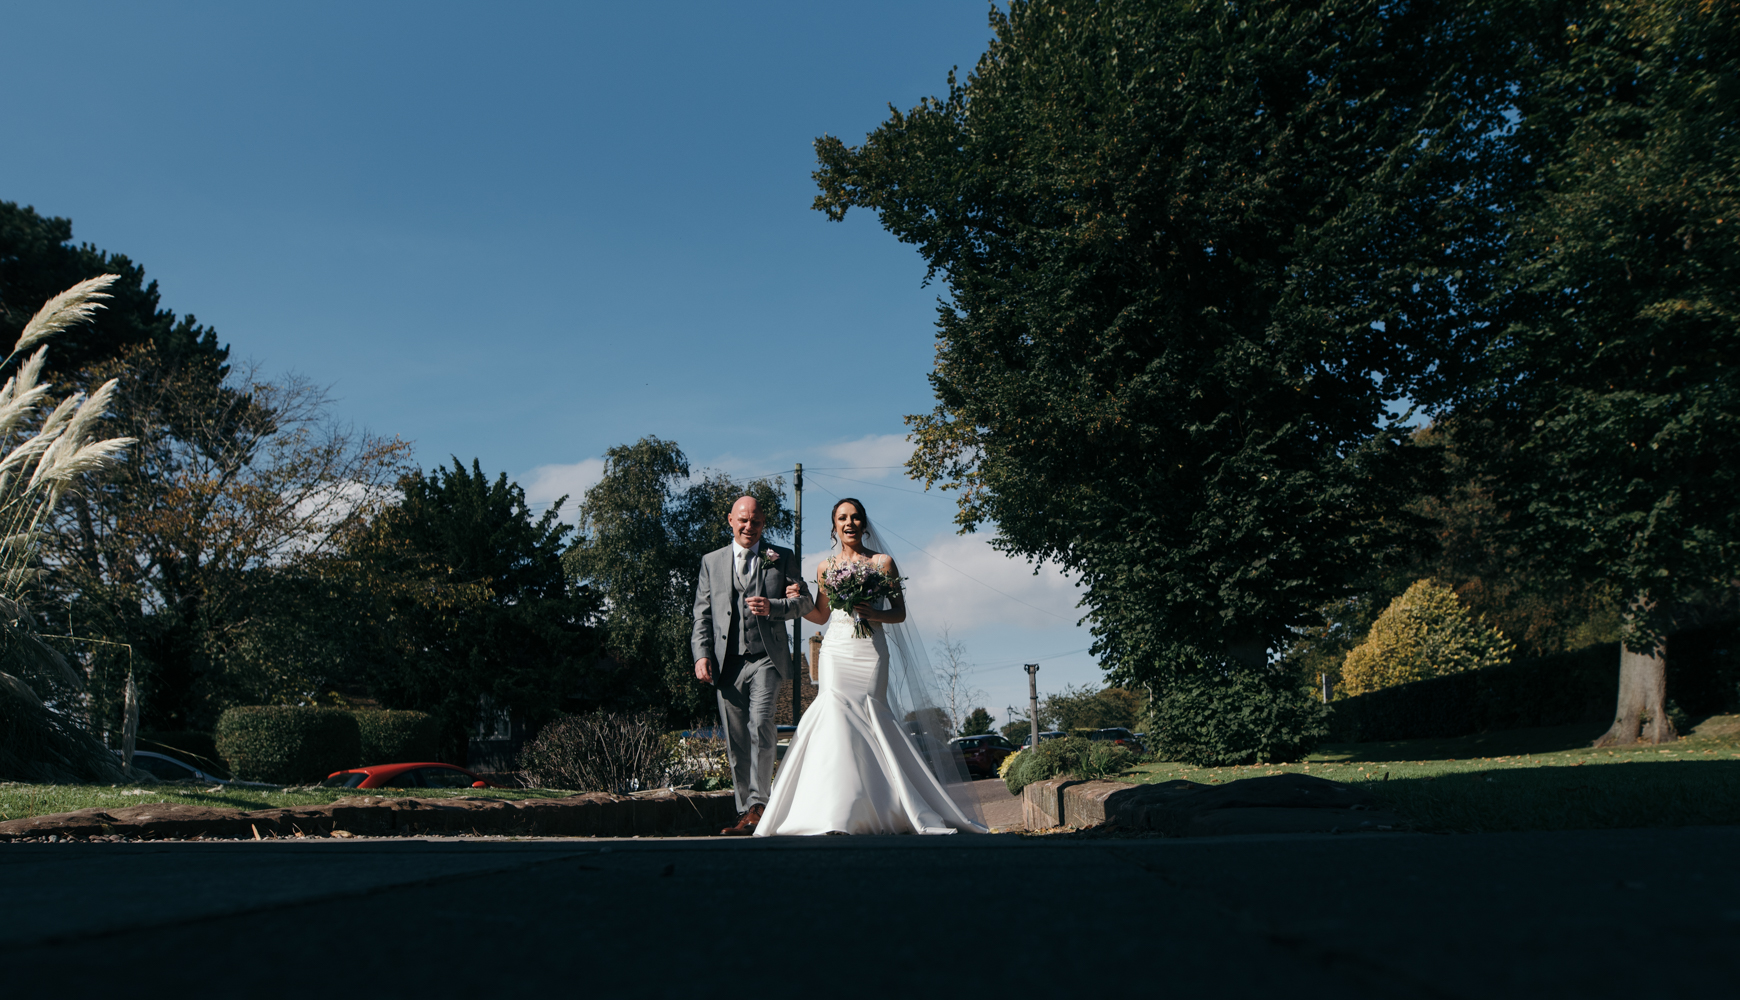 The bride and her father walking up the path to church